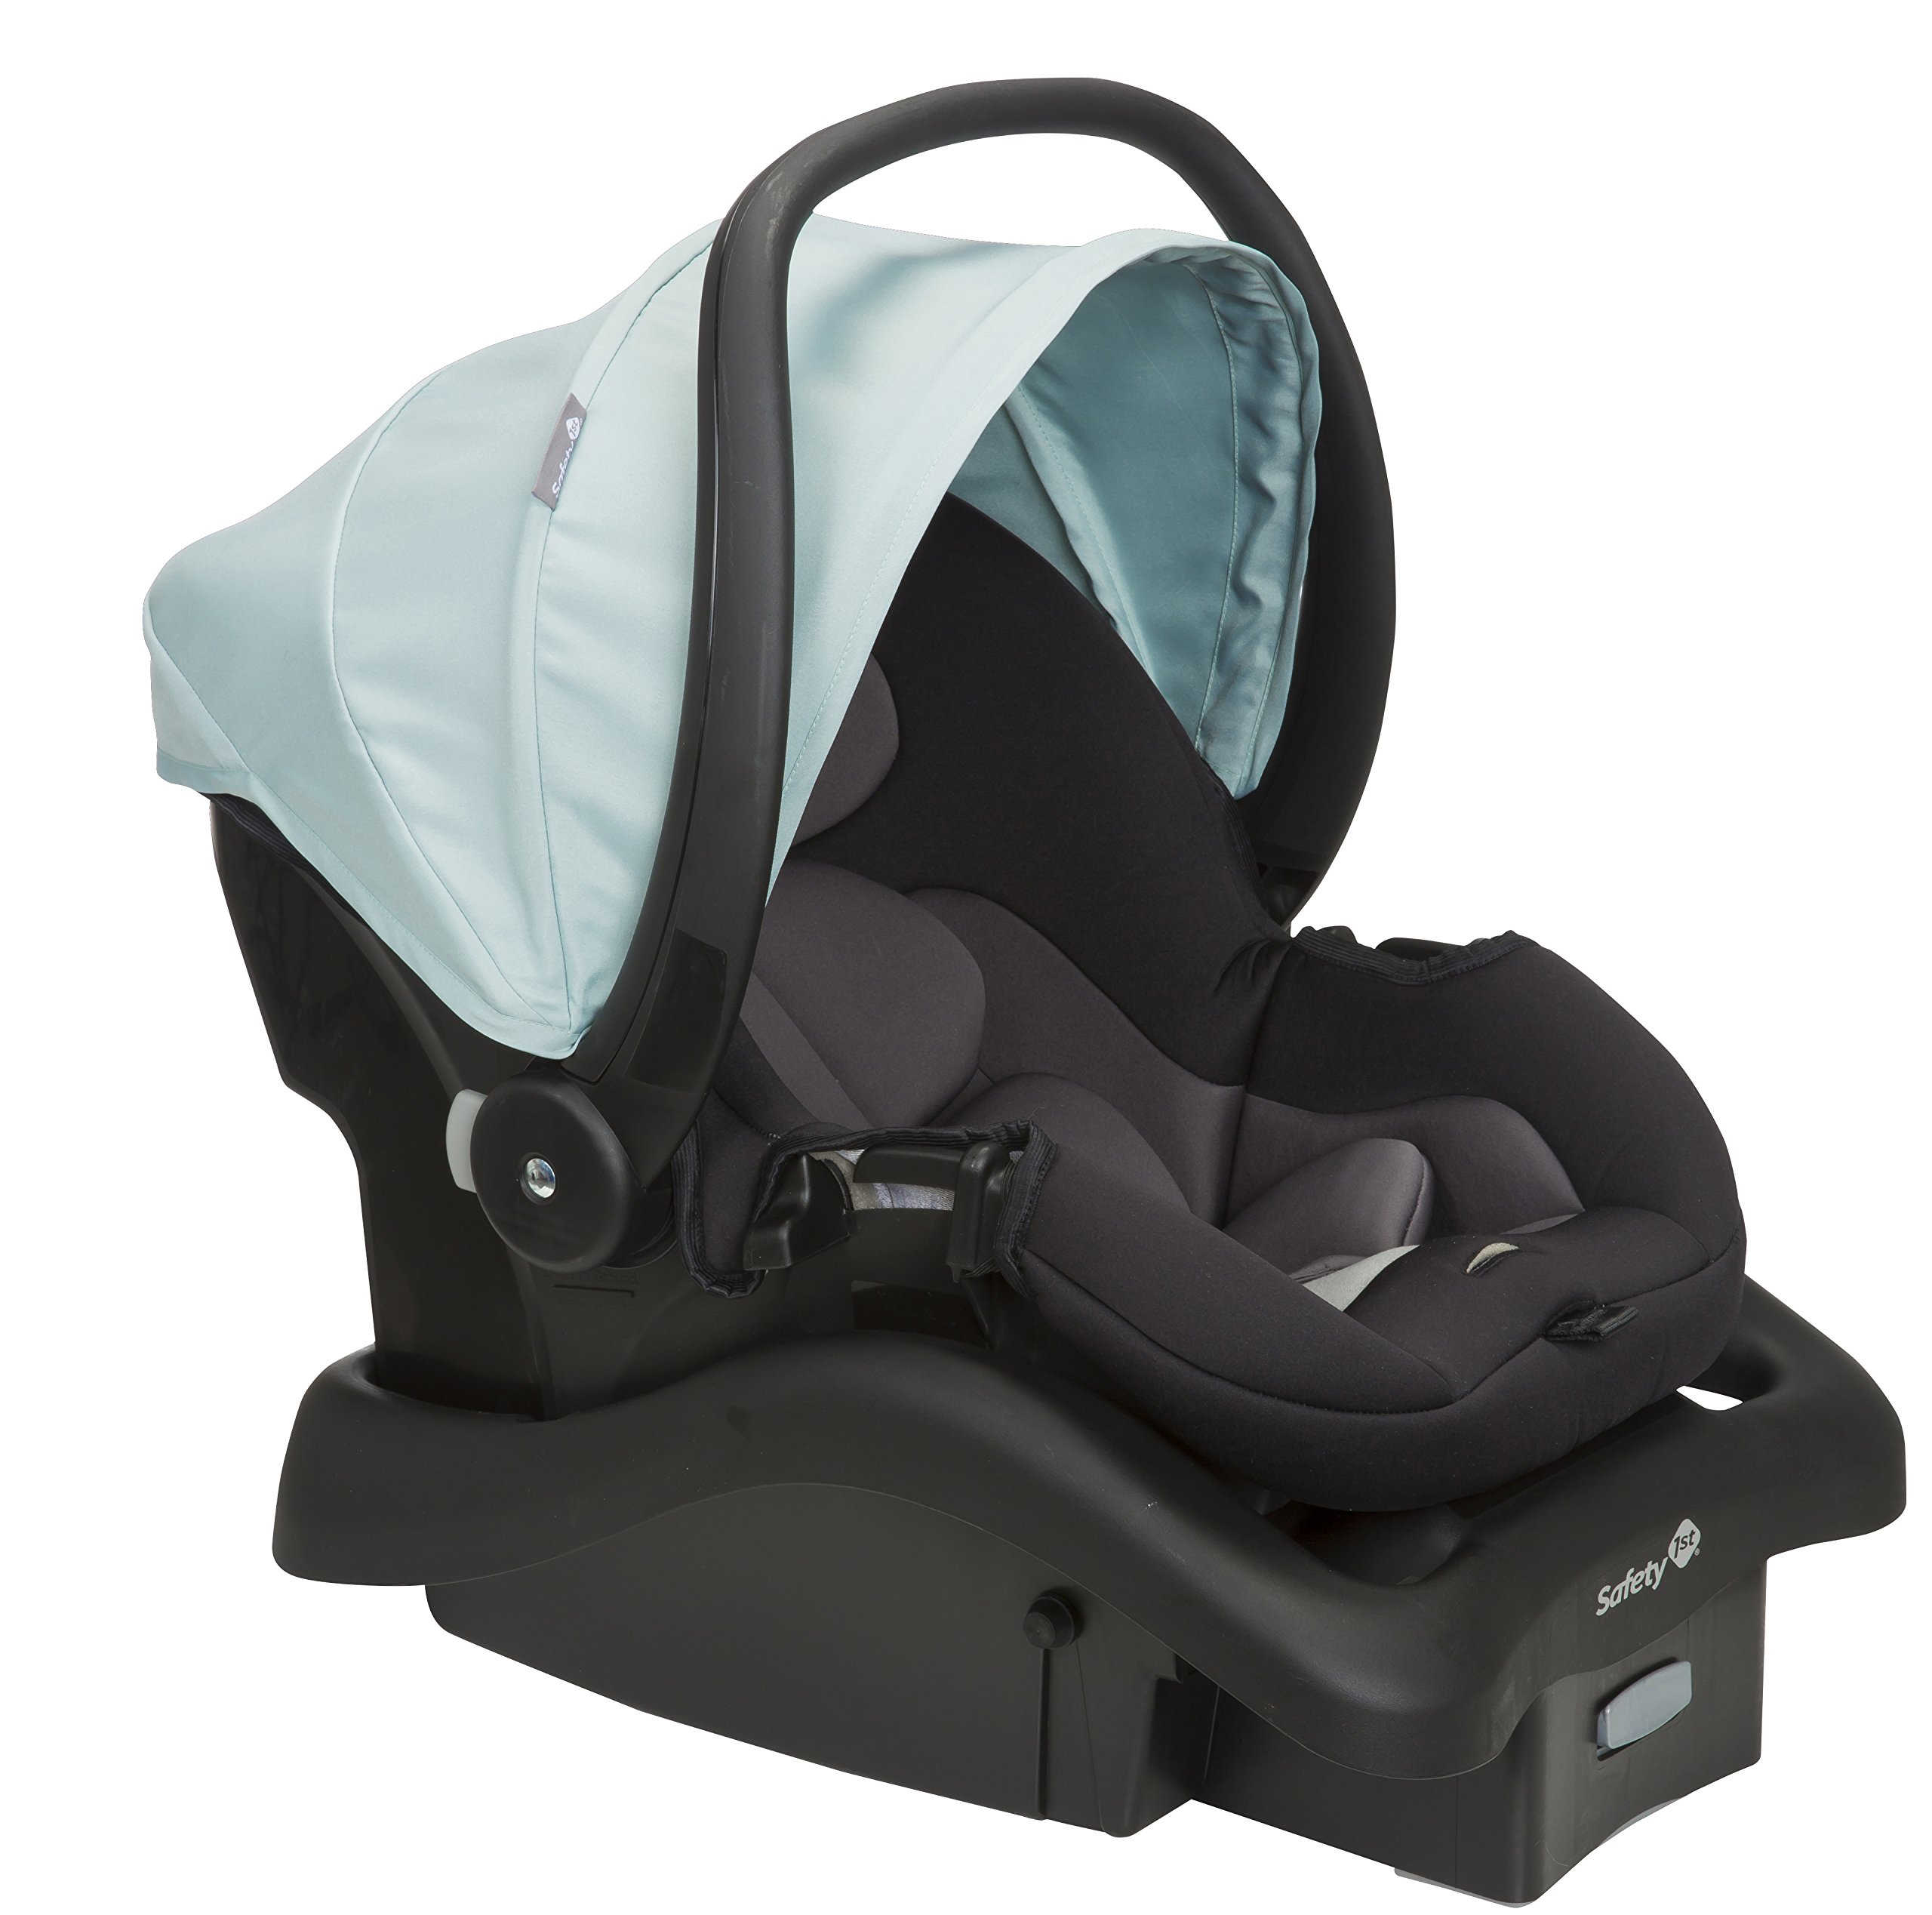 Safety 1st onBoard 35 LT Infant Car Seat, Juniper Pop by Safety 1st (Image #5)